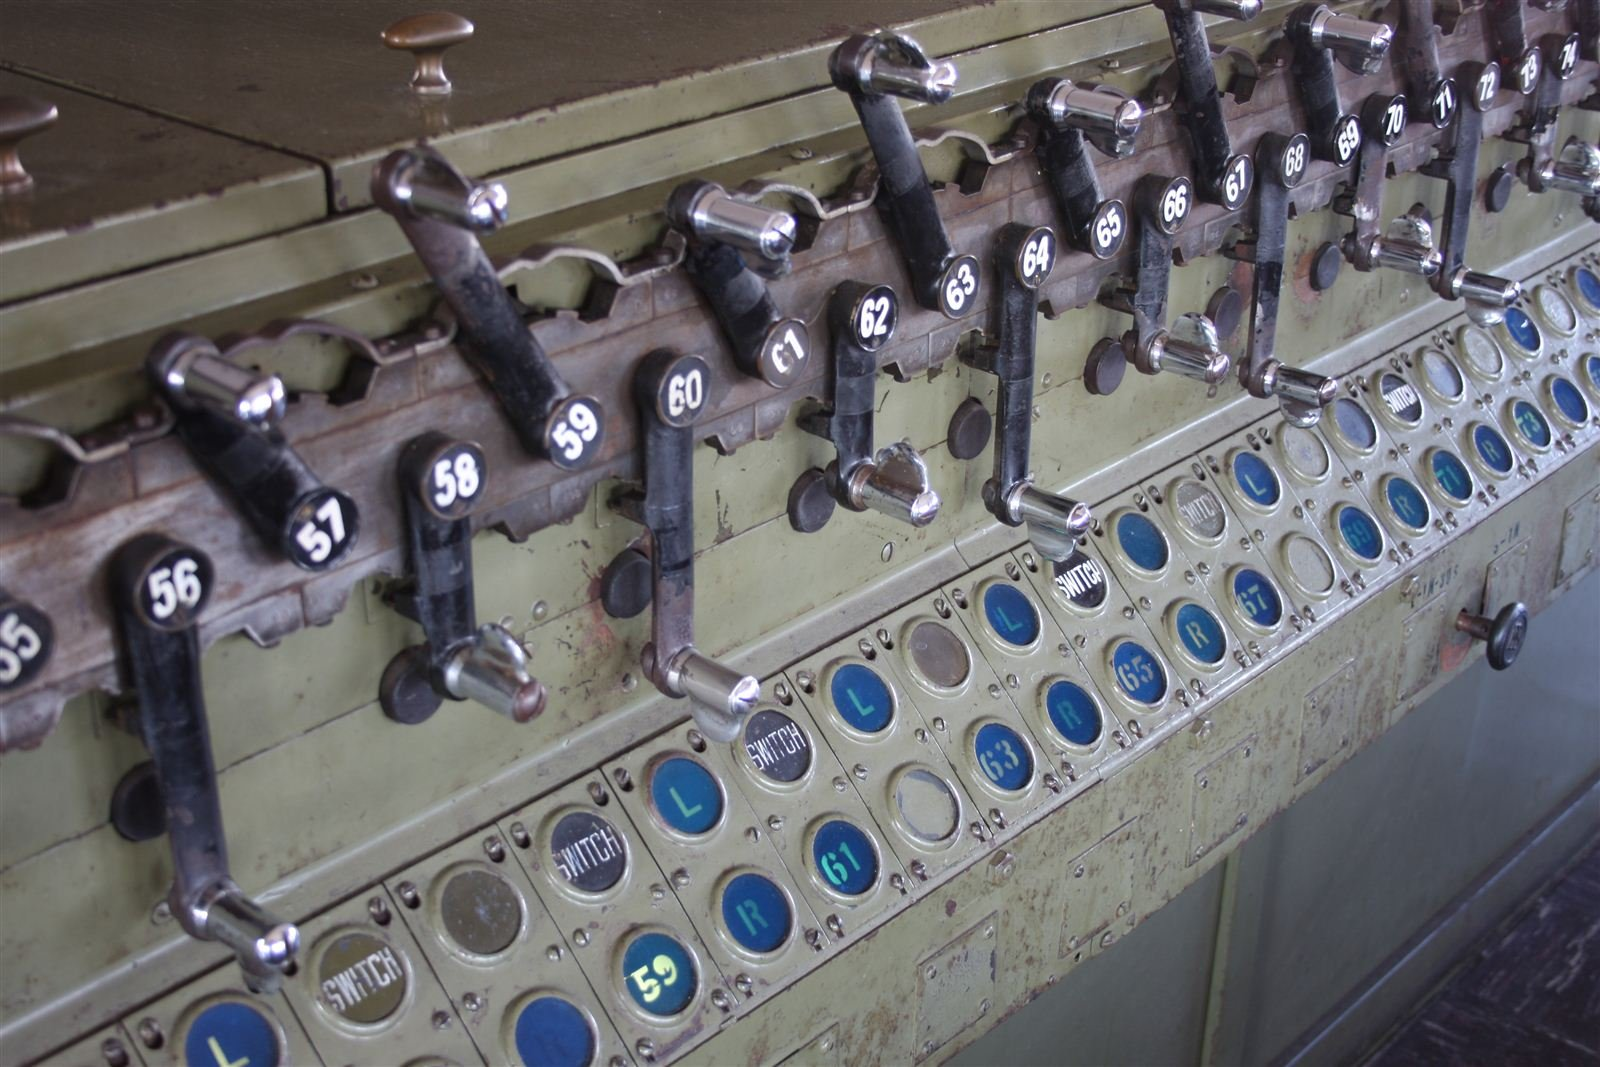 A close-up of some of the interlocking machine's 113 levers.